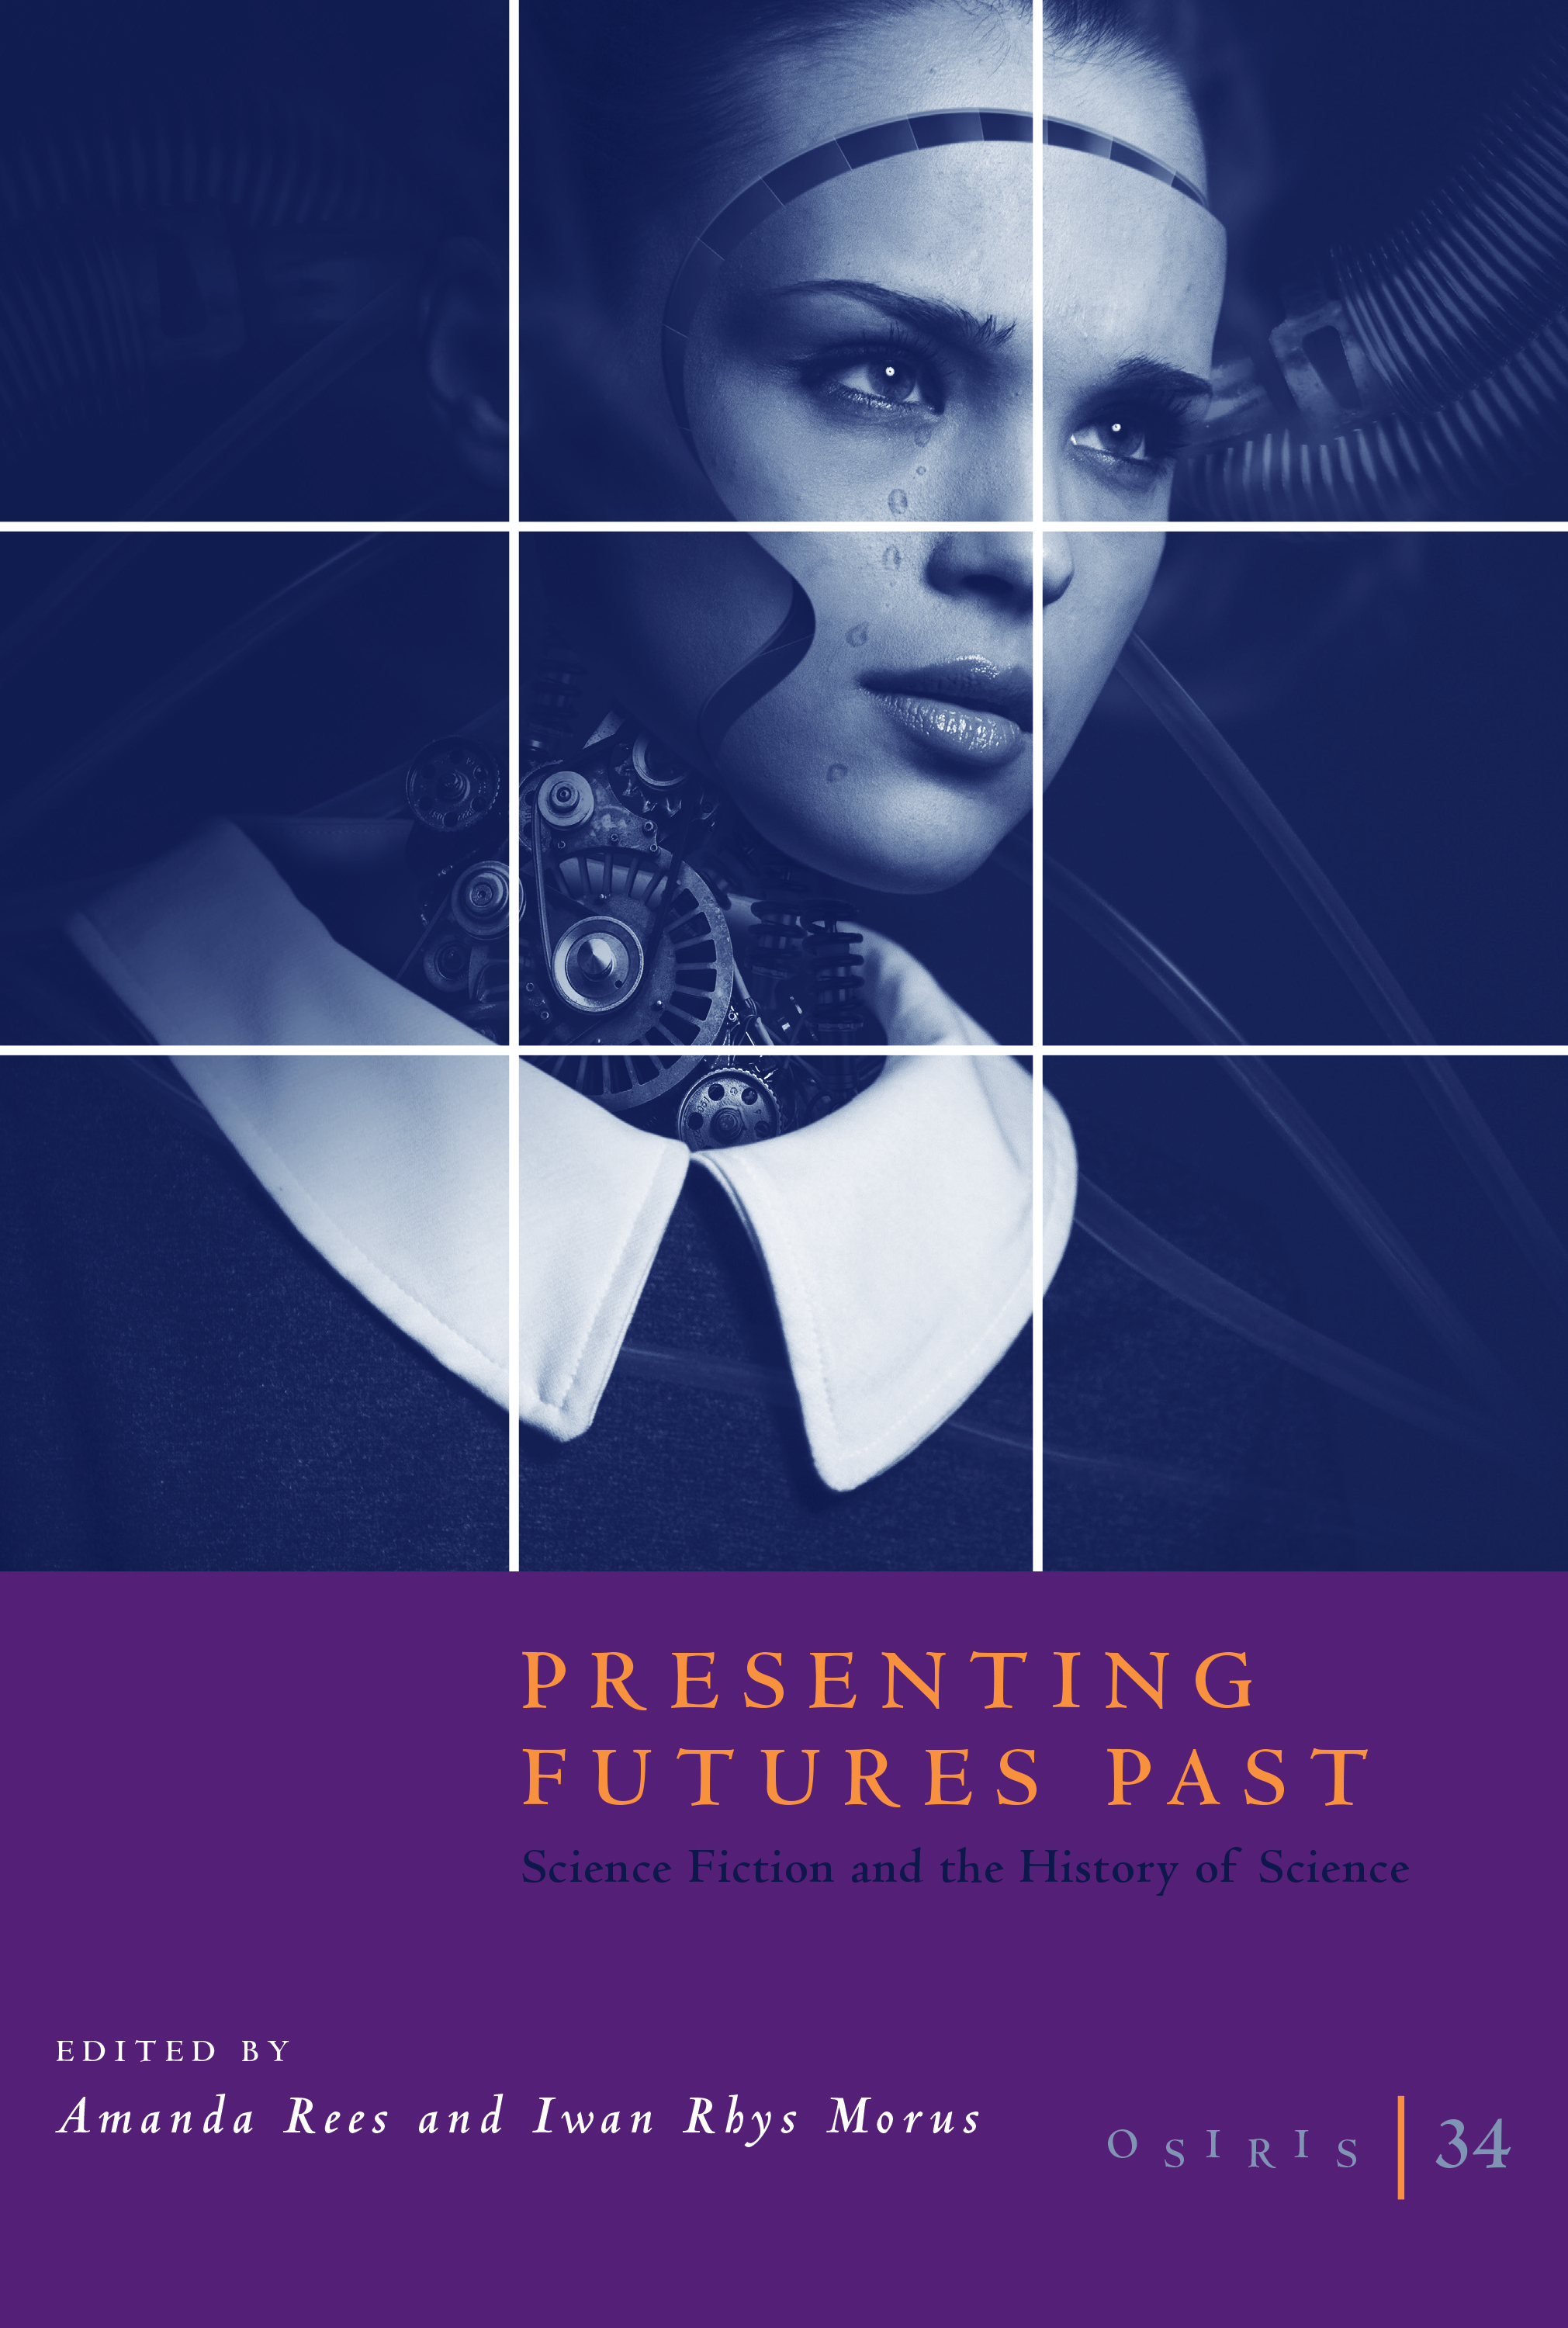 Osiris, Volume 34: Presenting Futures Past: Science Fiction and the History of Science